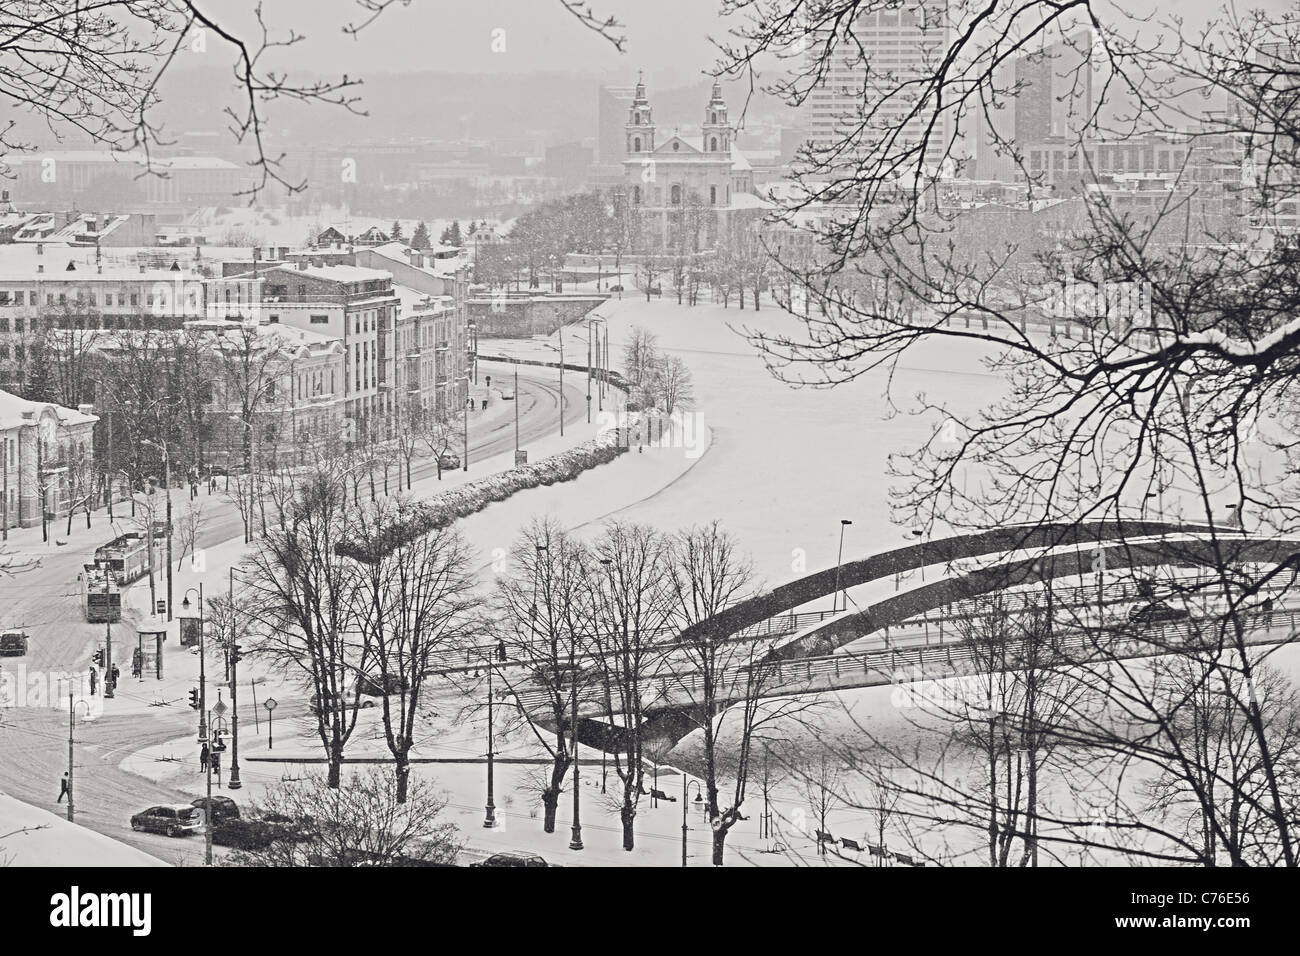 Cityscape  - Snowfall in Vilnius, Lithuania Stock Photo